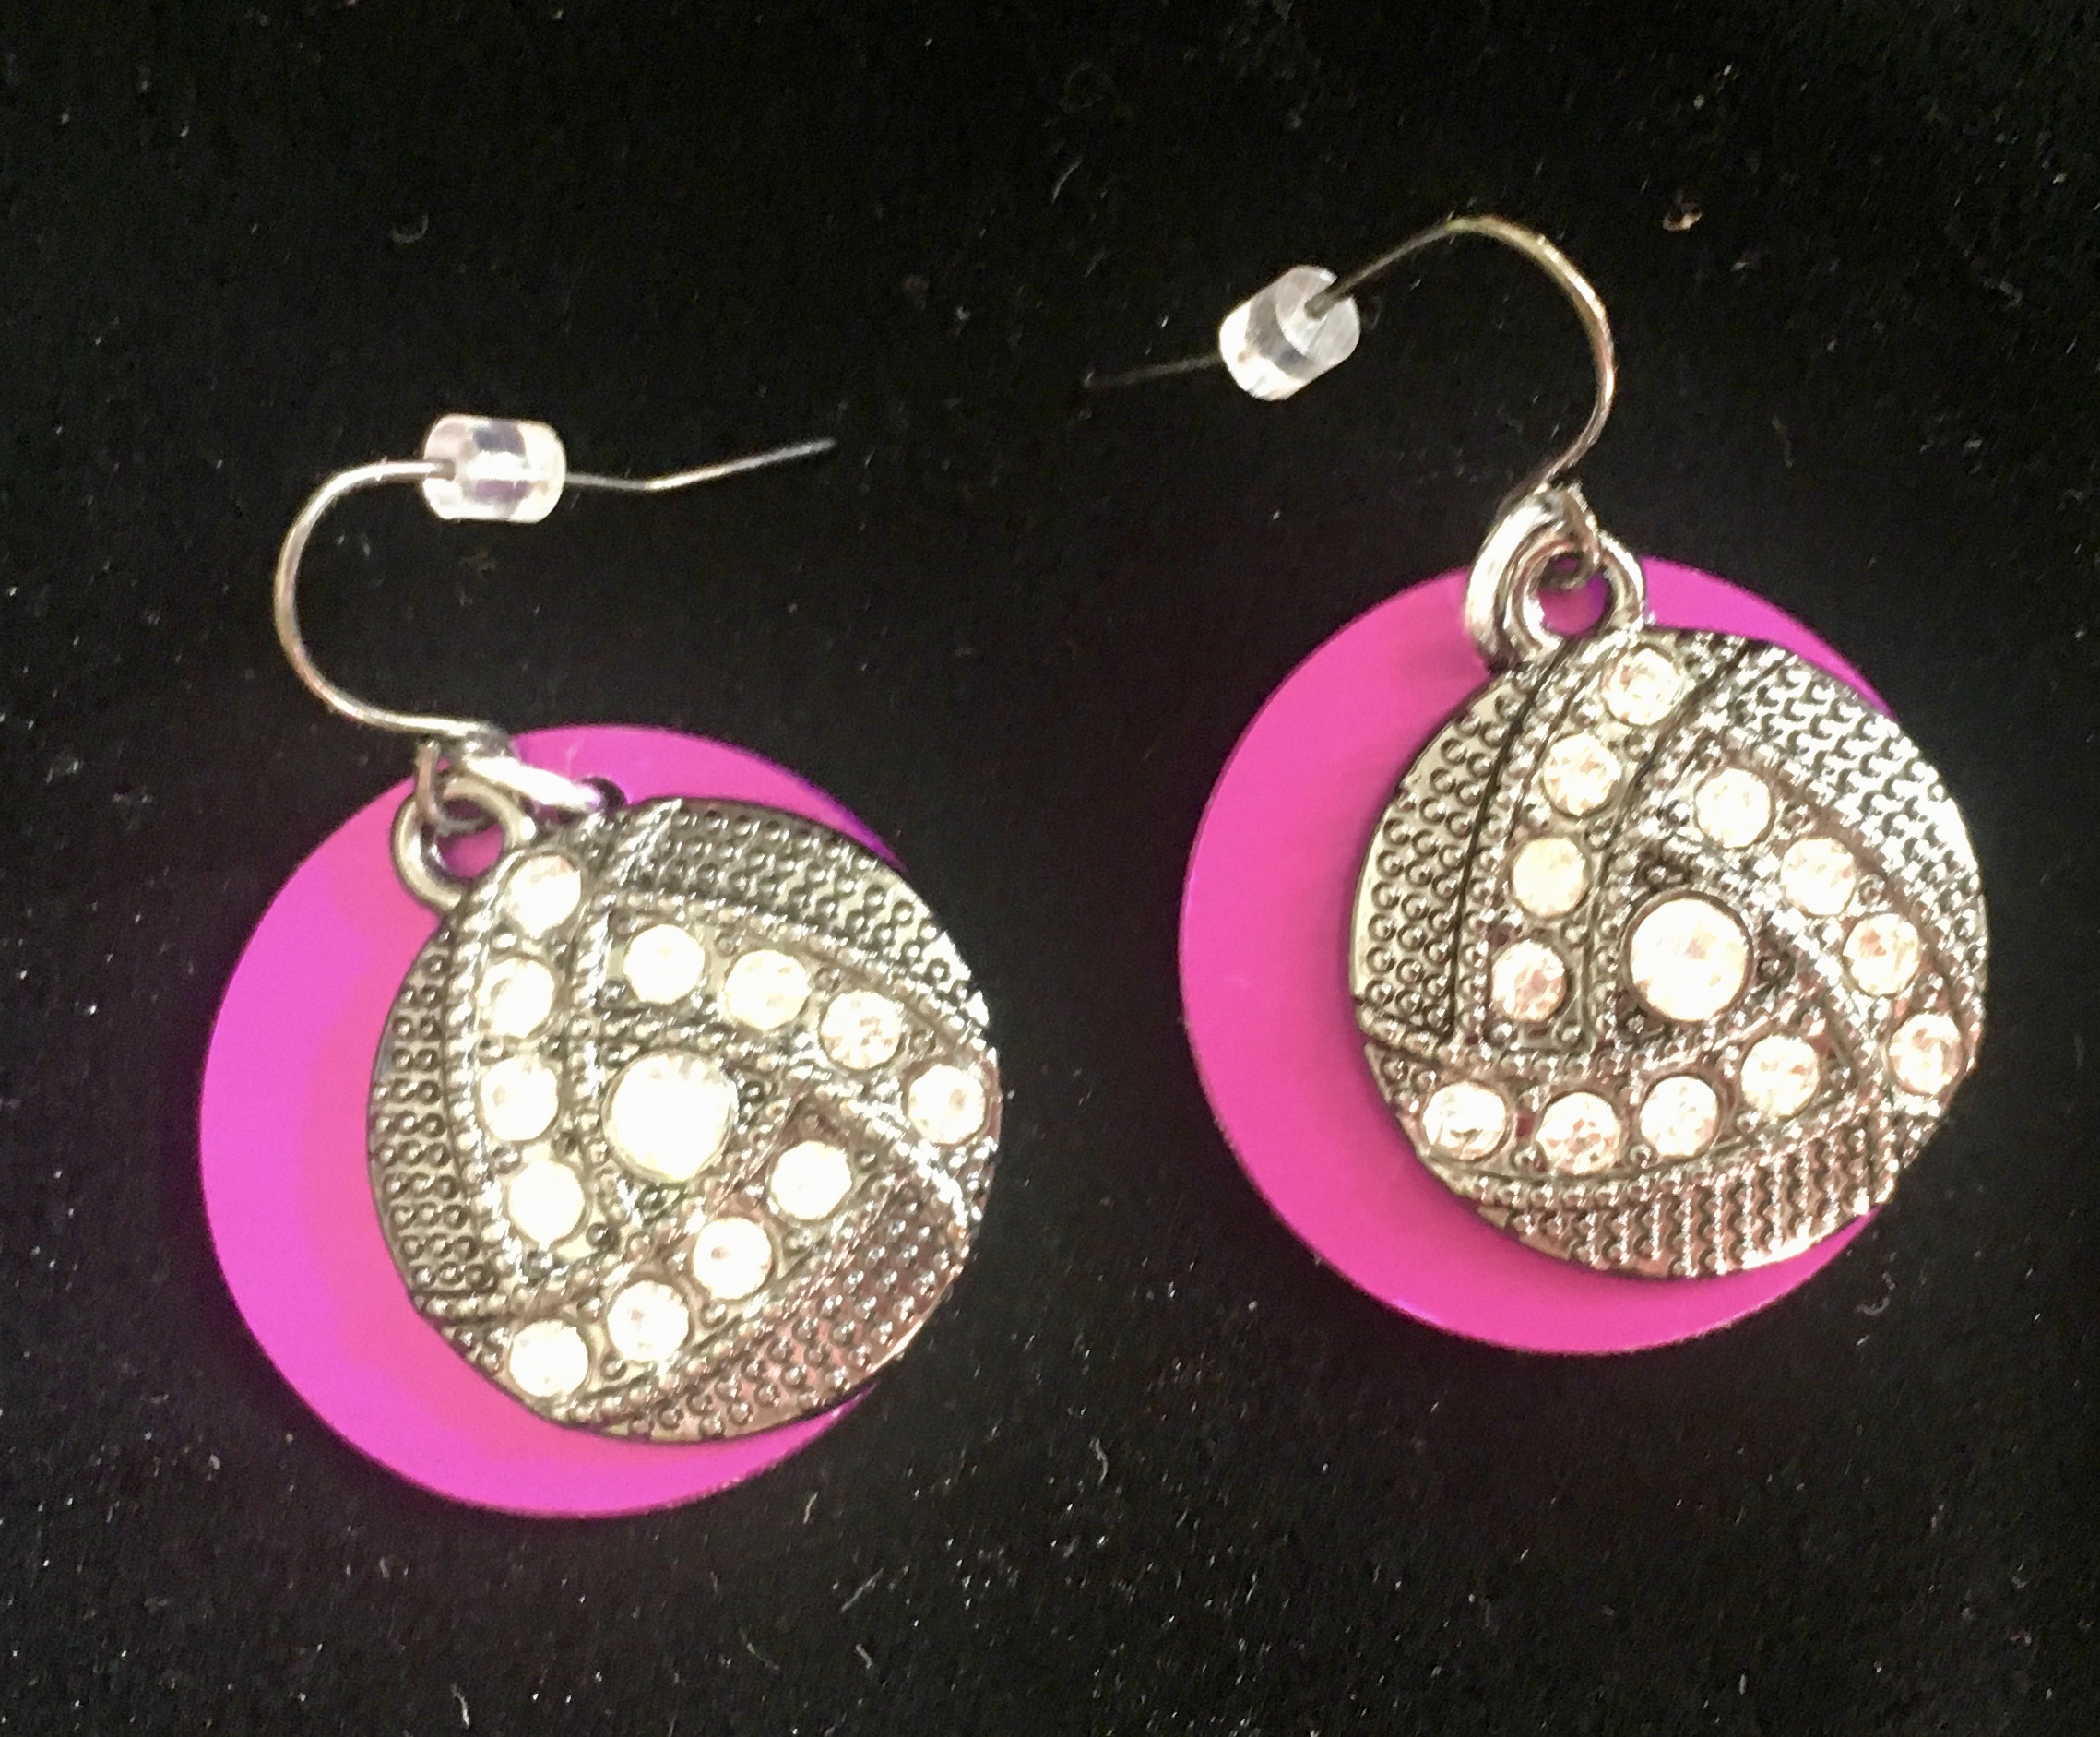 Rhinestone-Studded Earrings with Purple Disk